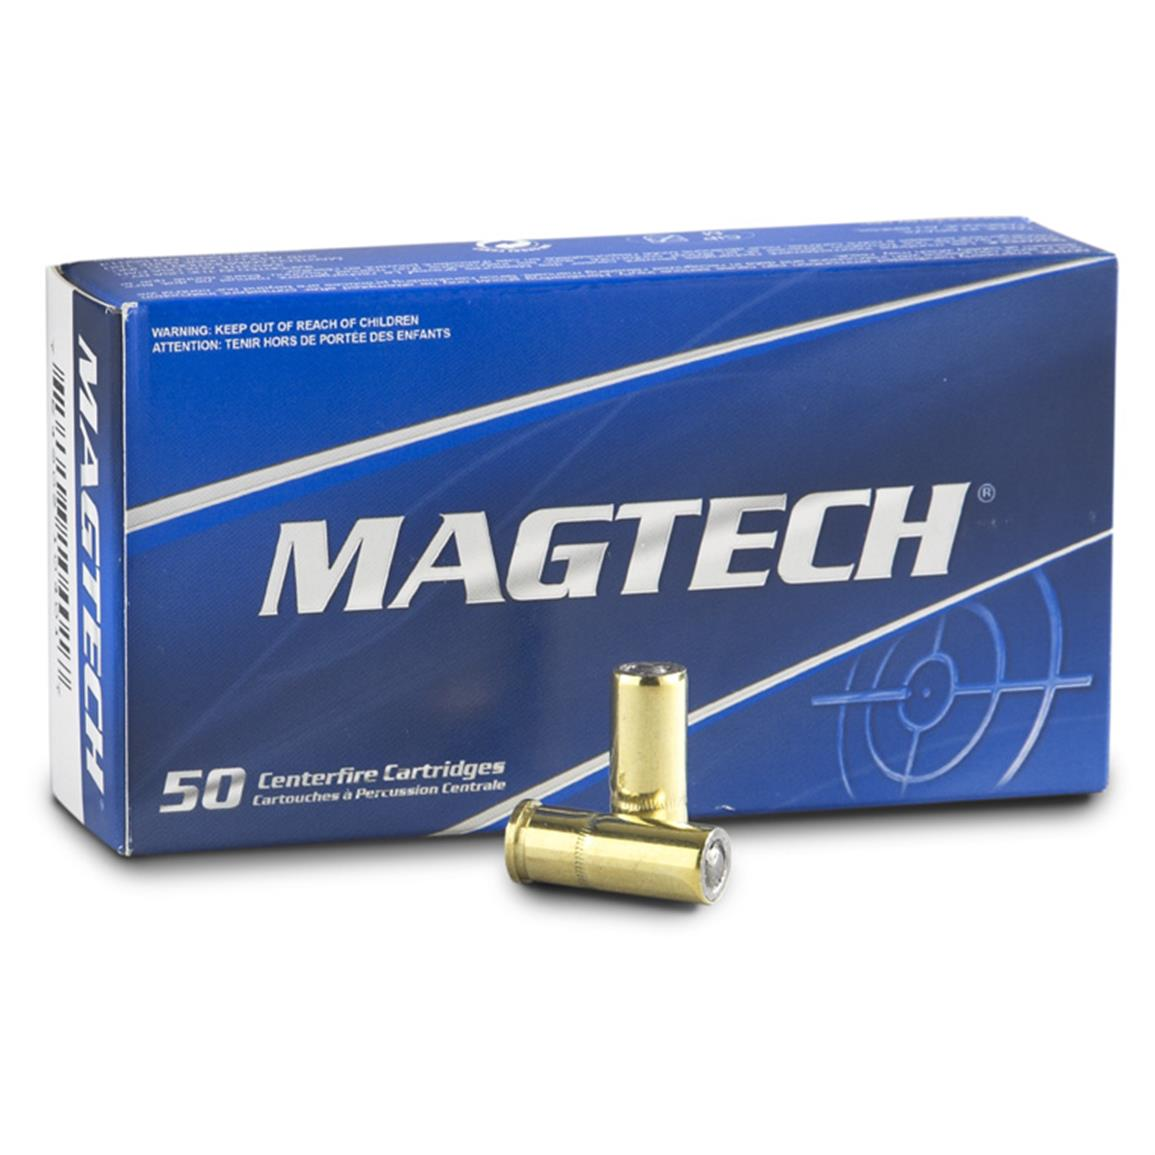 Magtech® Revolver .32 S&W® Long 98 Grain LWC 50 rounds